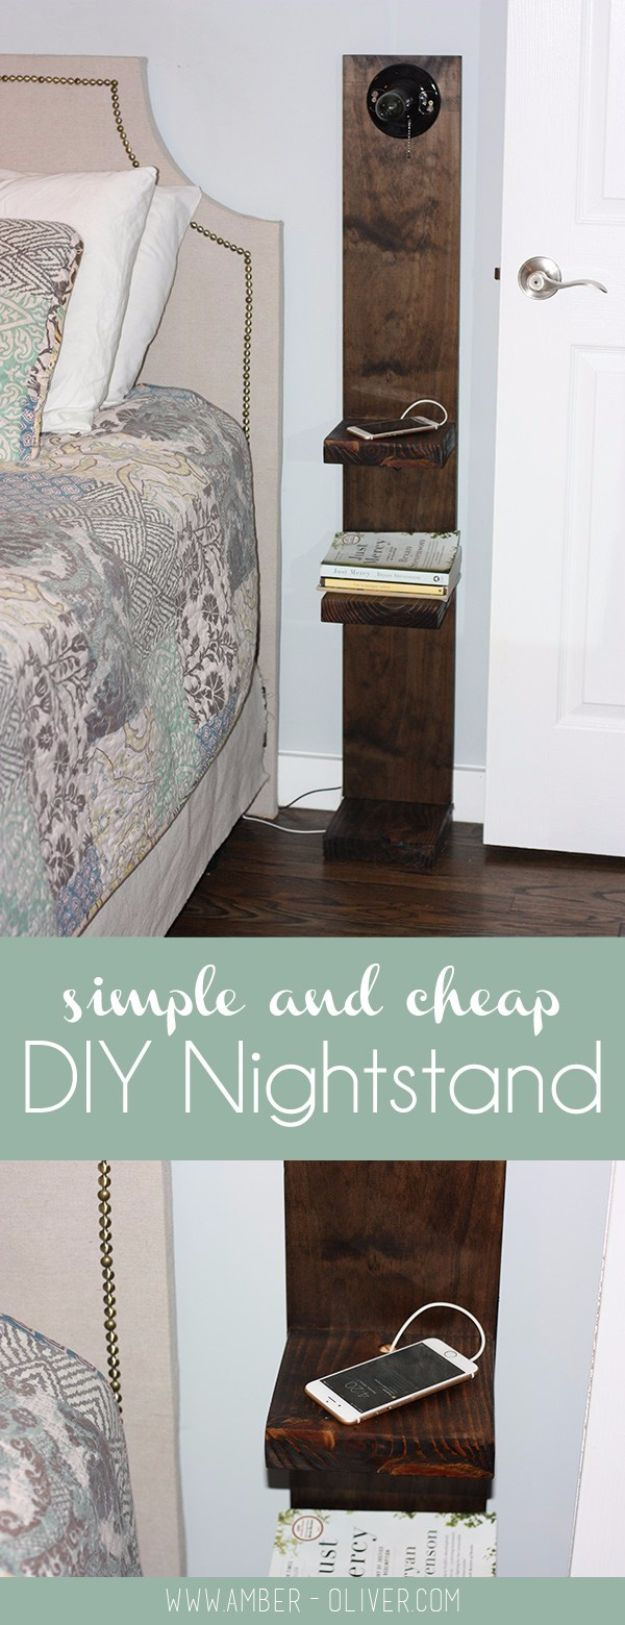 DIY Nightstands for the Bedroom - DIY Nightstand With Lighting - Easy Do It Yourself Bedside Tables and Furniture Project Ideas - Thrift Store Makeovers For Your Room and Bed Side Night Stand - Storage for Books and Remotes, Cute Shabby Chic and Vintage Decor - Step by Step Tutorials and Instructions http://diyjoy.com/diy-nightstands-bedroom